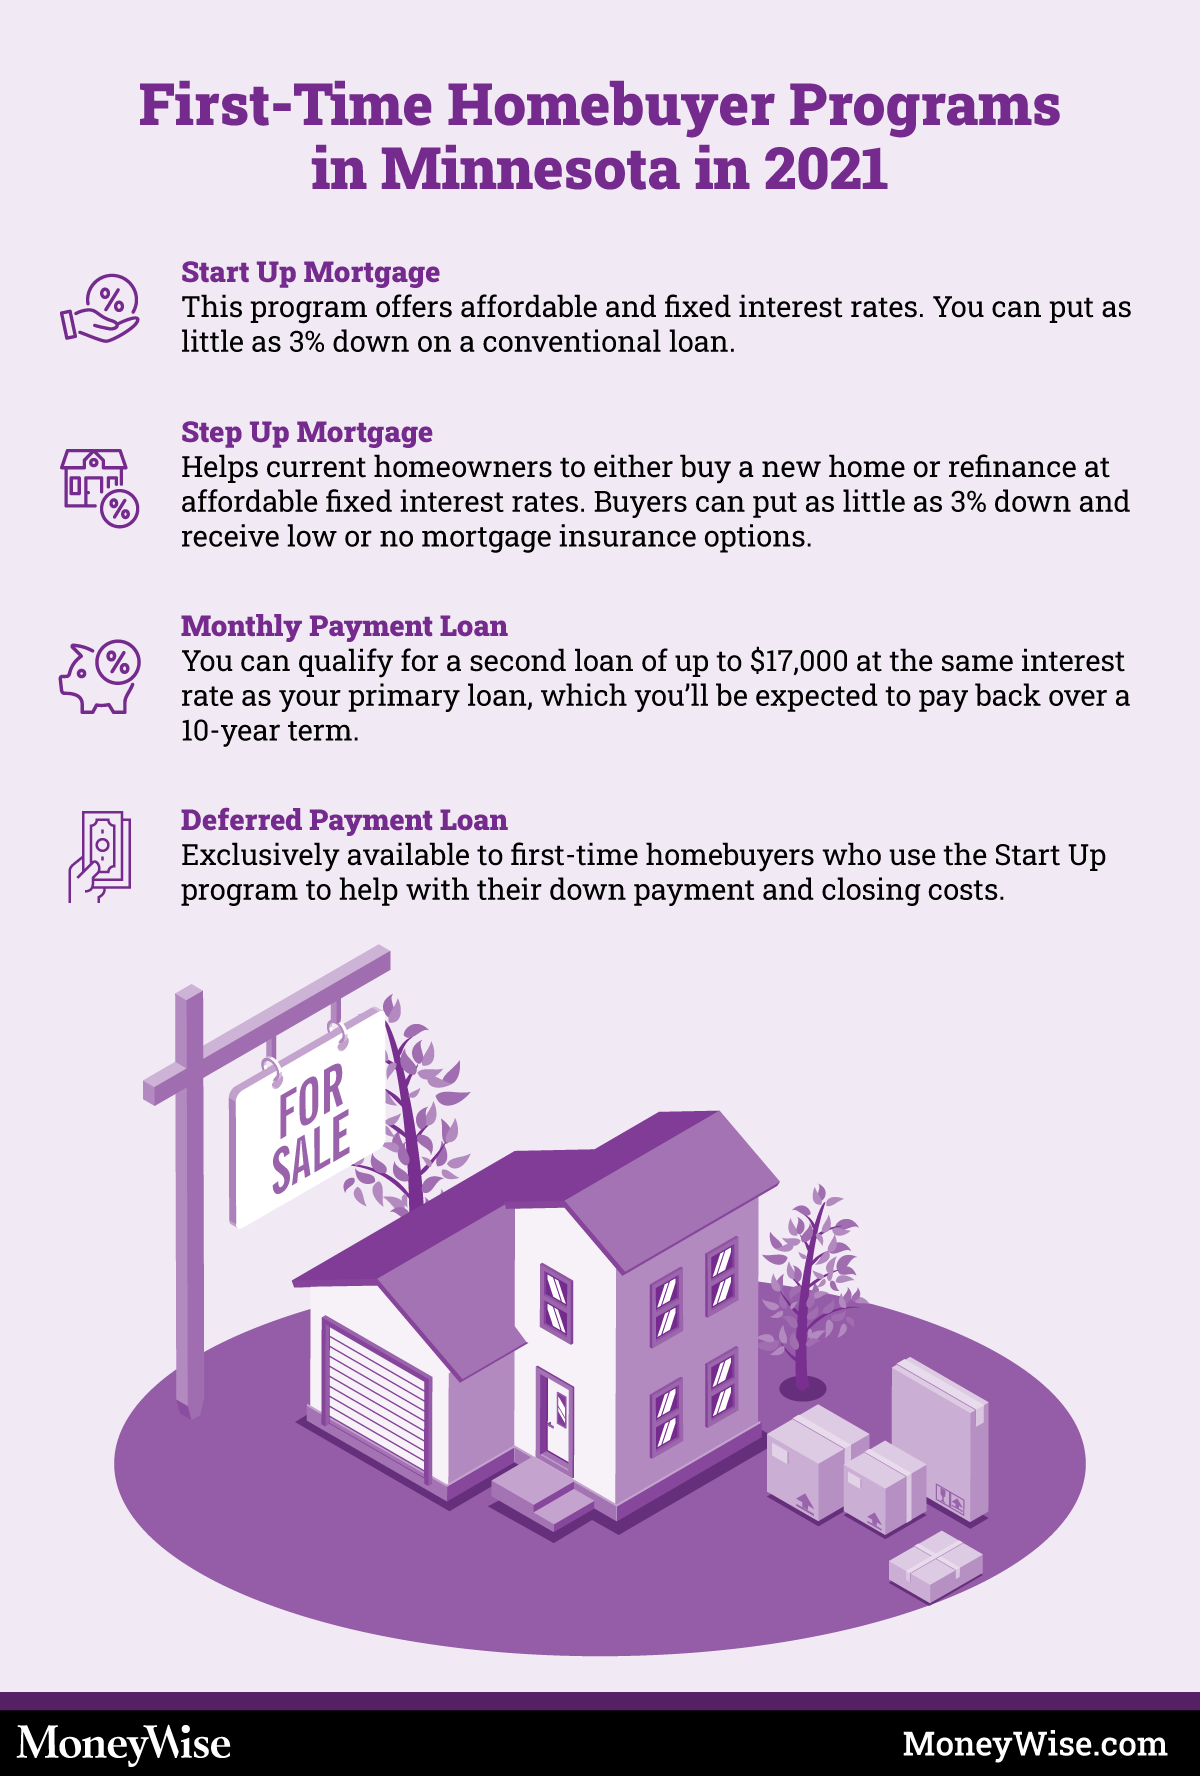 Infographic on programs for first-time home-buyers in Minnesota